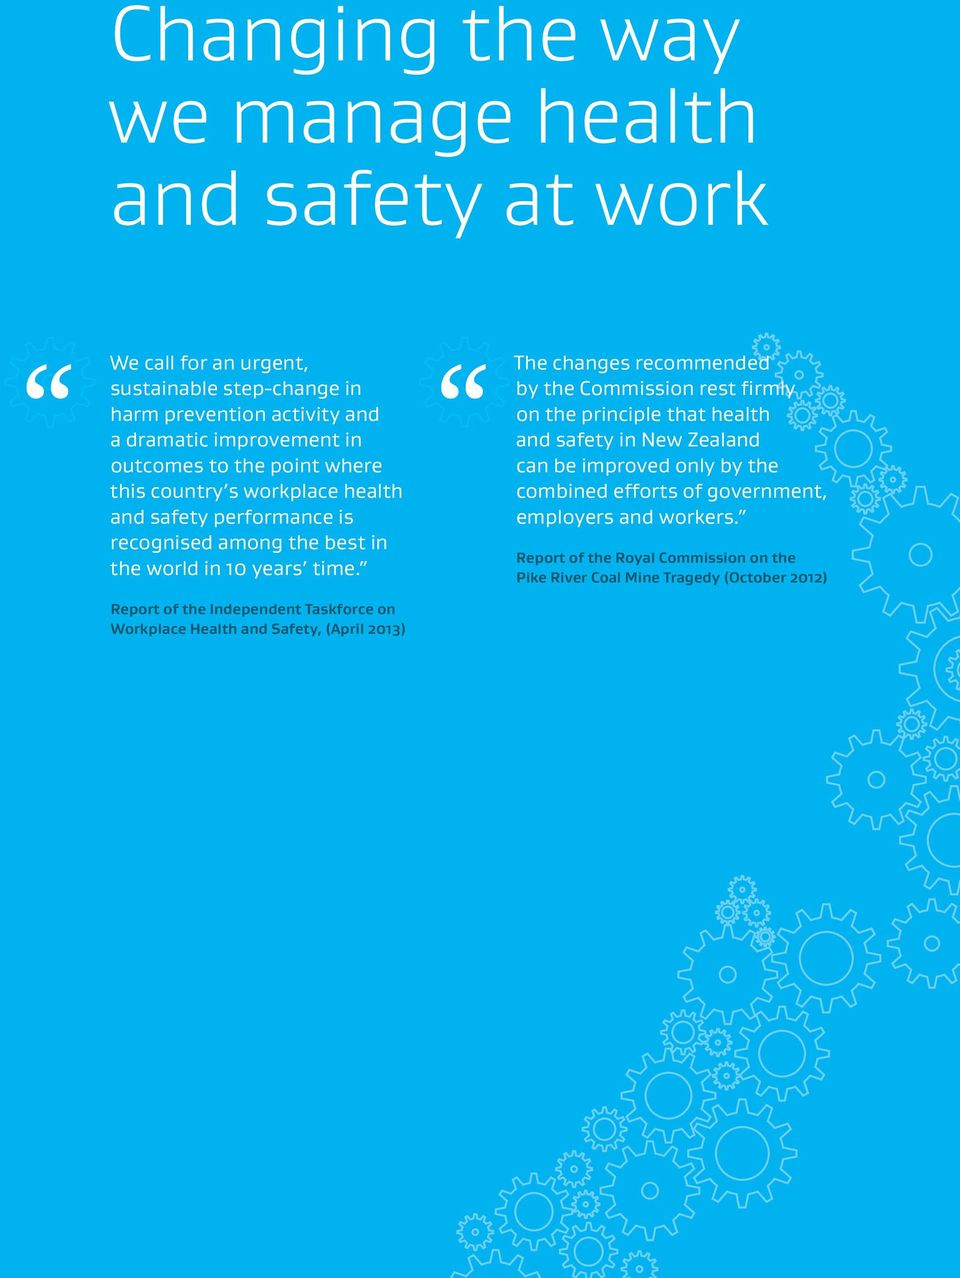 The changes recommended by the Commission rest firmly on the principle that health and safety in New Zealand can be improved only by the combined efforts of